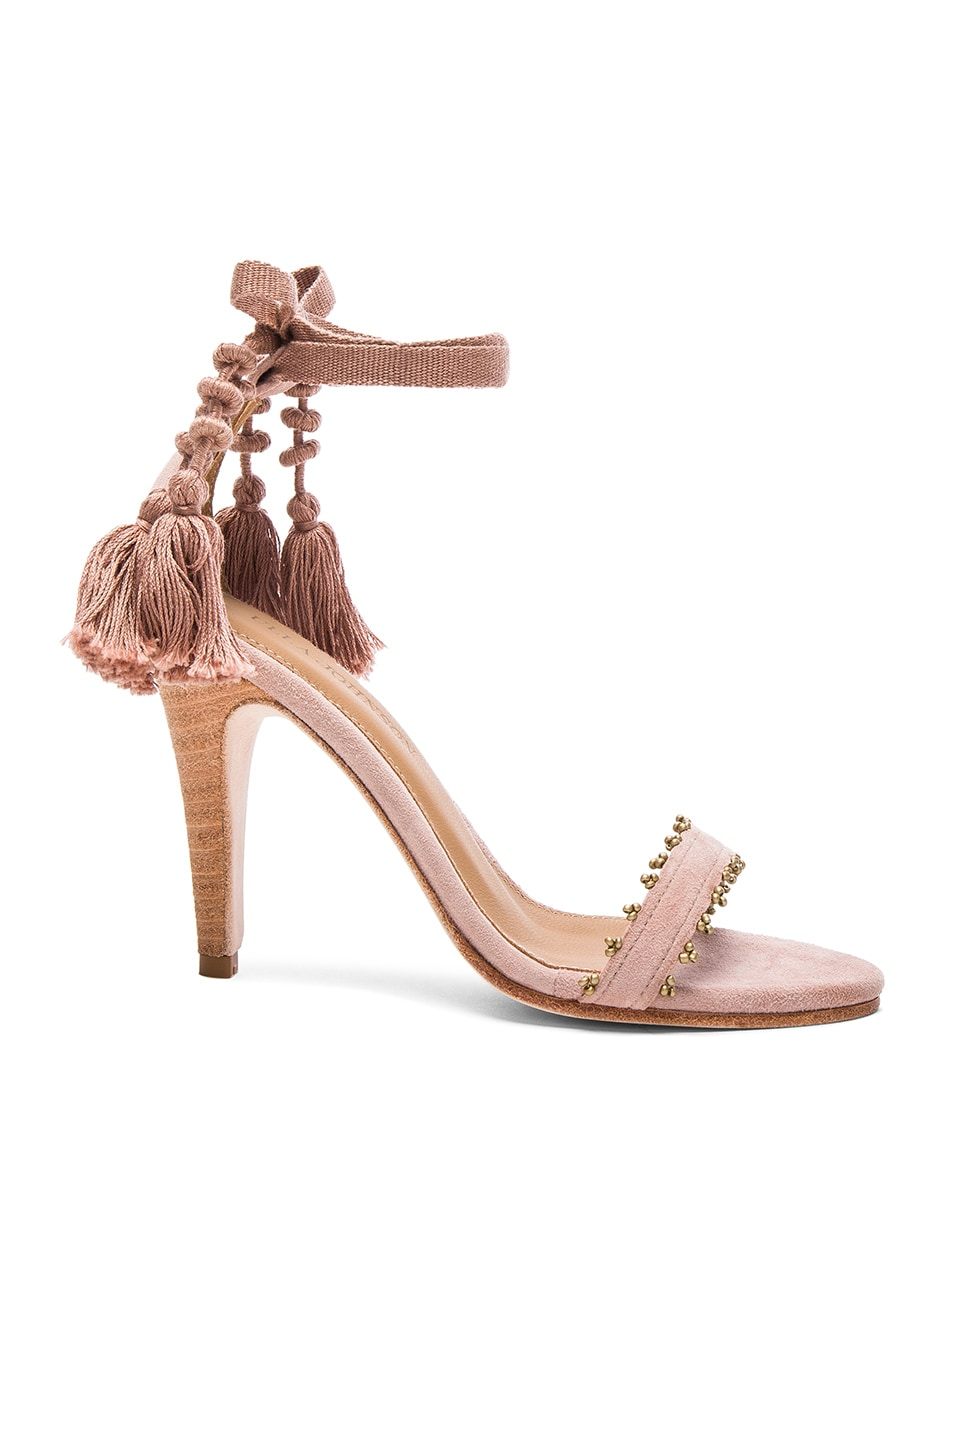 Image 1 of Ulla Johnson Suede Dani Heels in Rose Suede